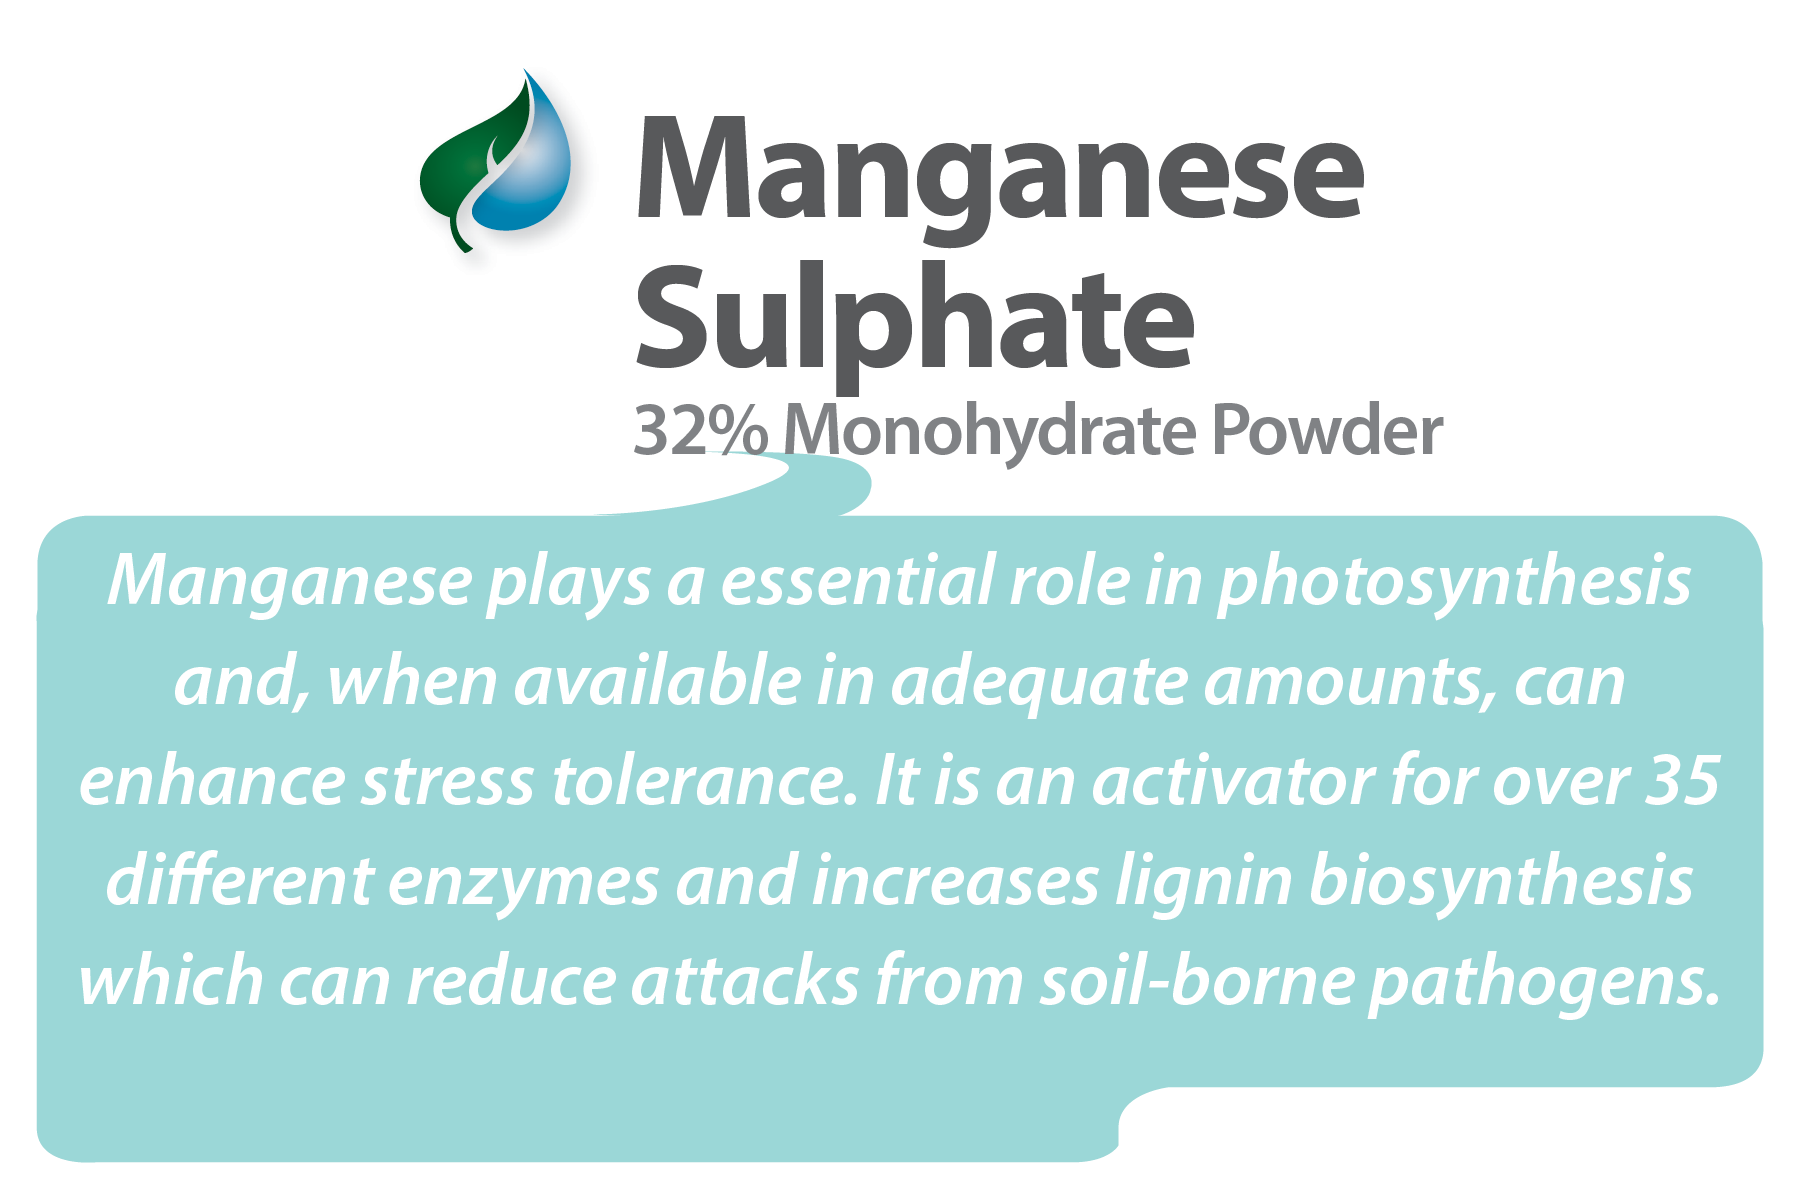 Manganese Sulphate Product label